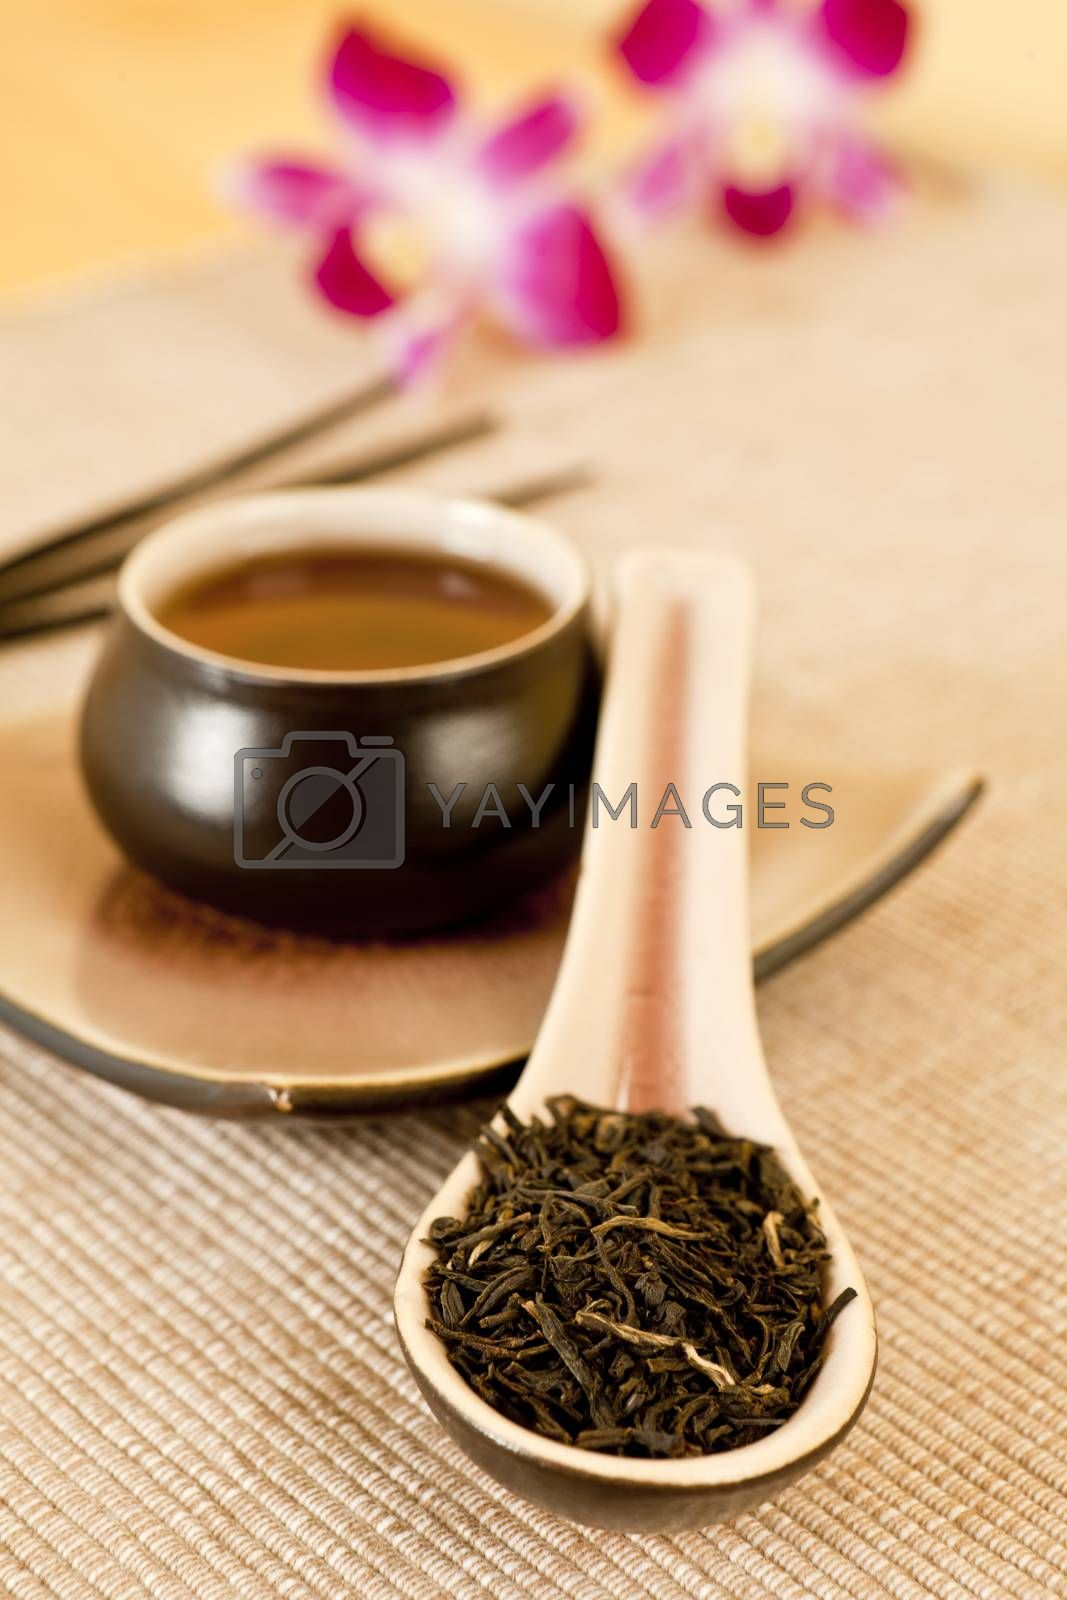 Tea leaves o a tea spoon, cup of black tea, insence sticks and flowers in background